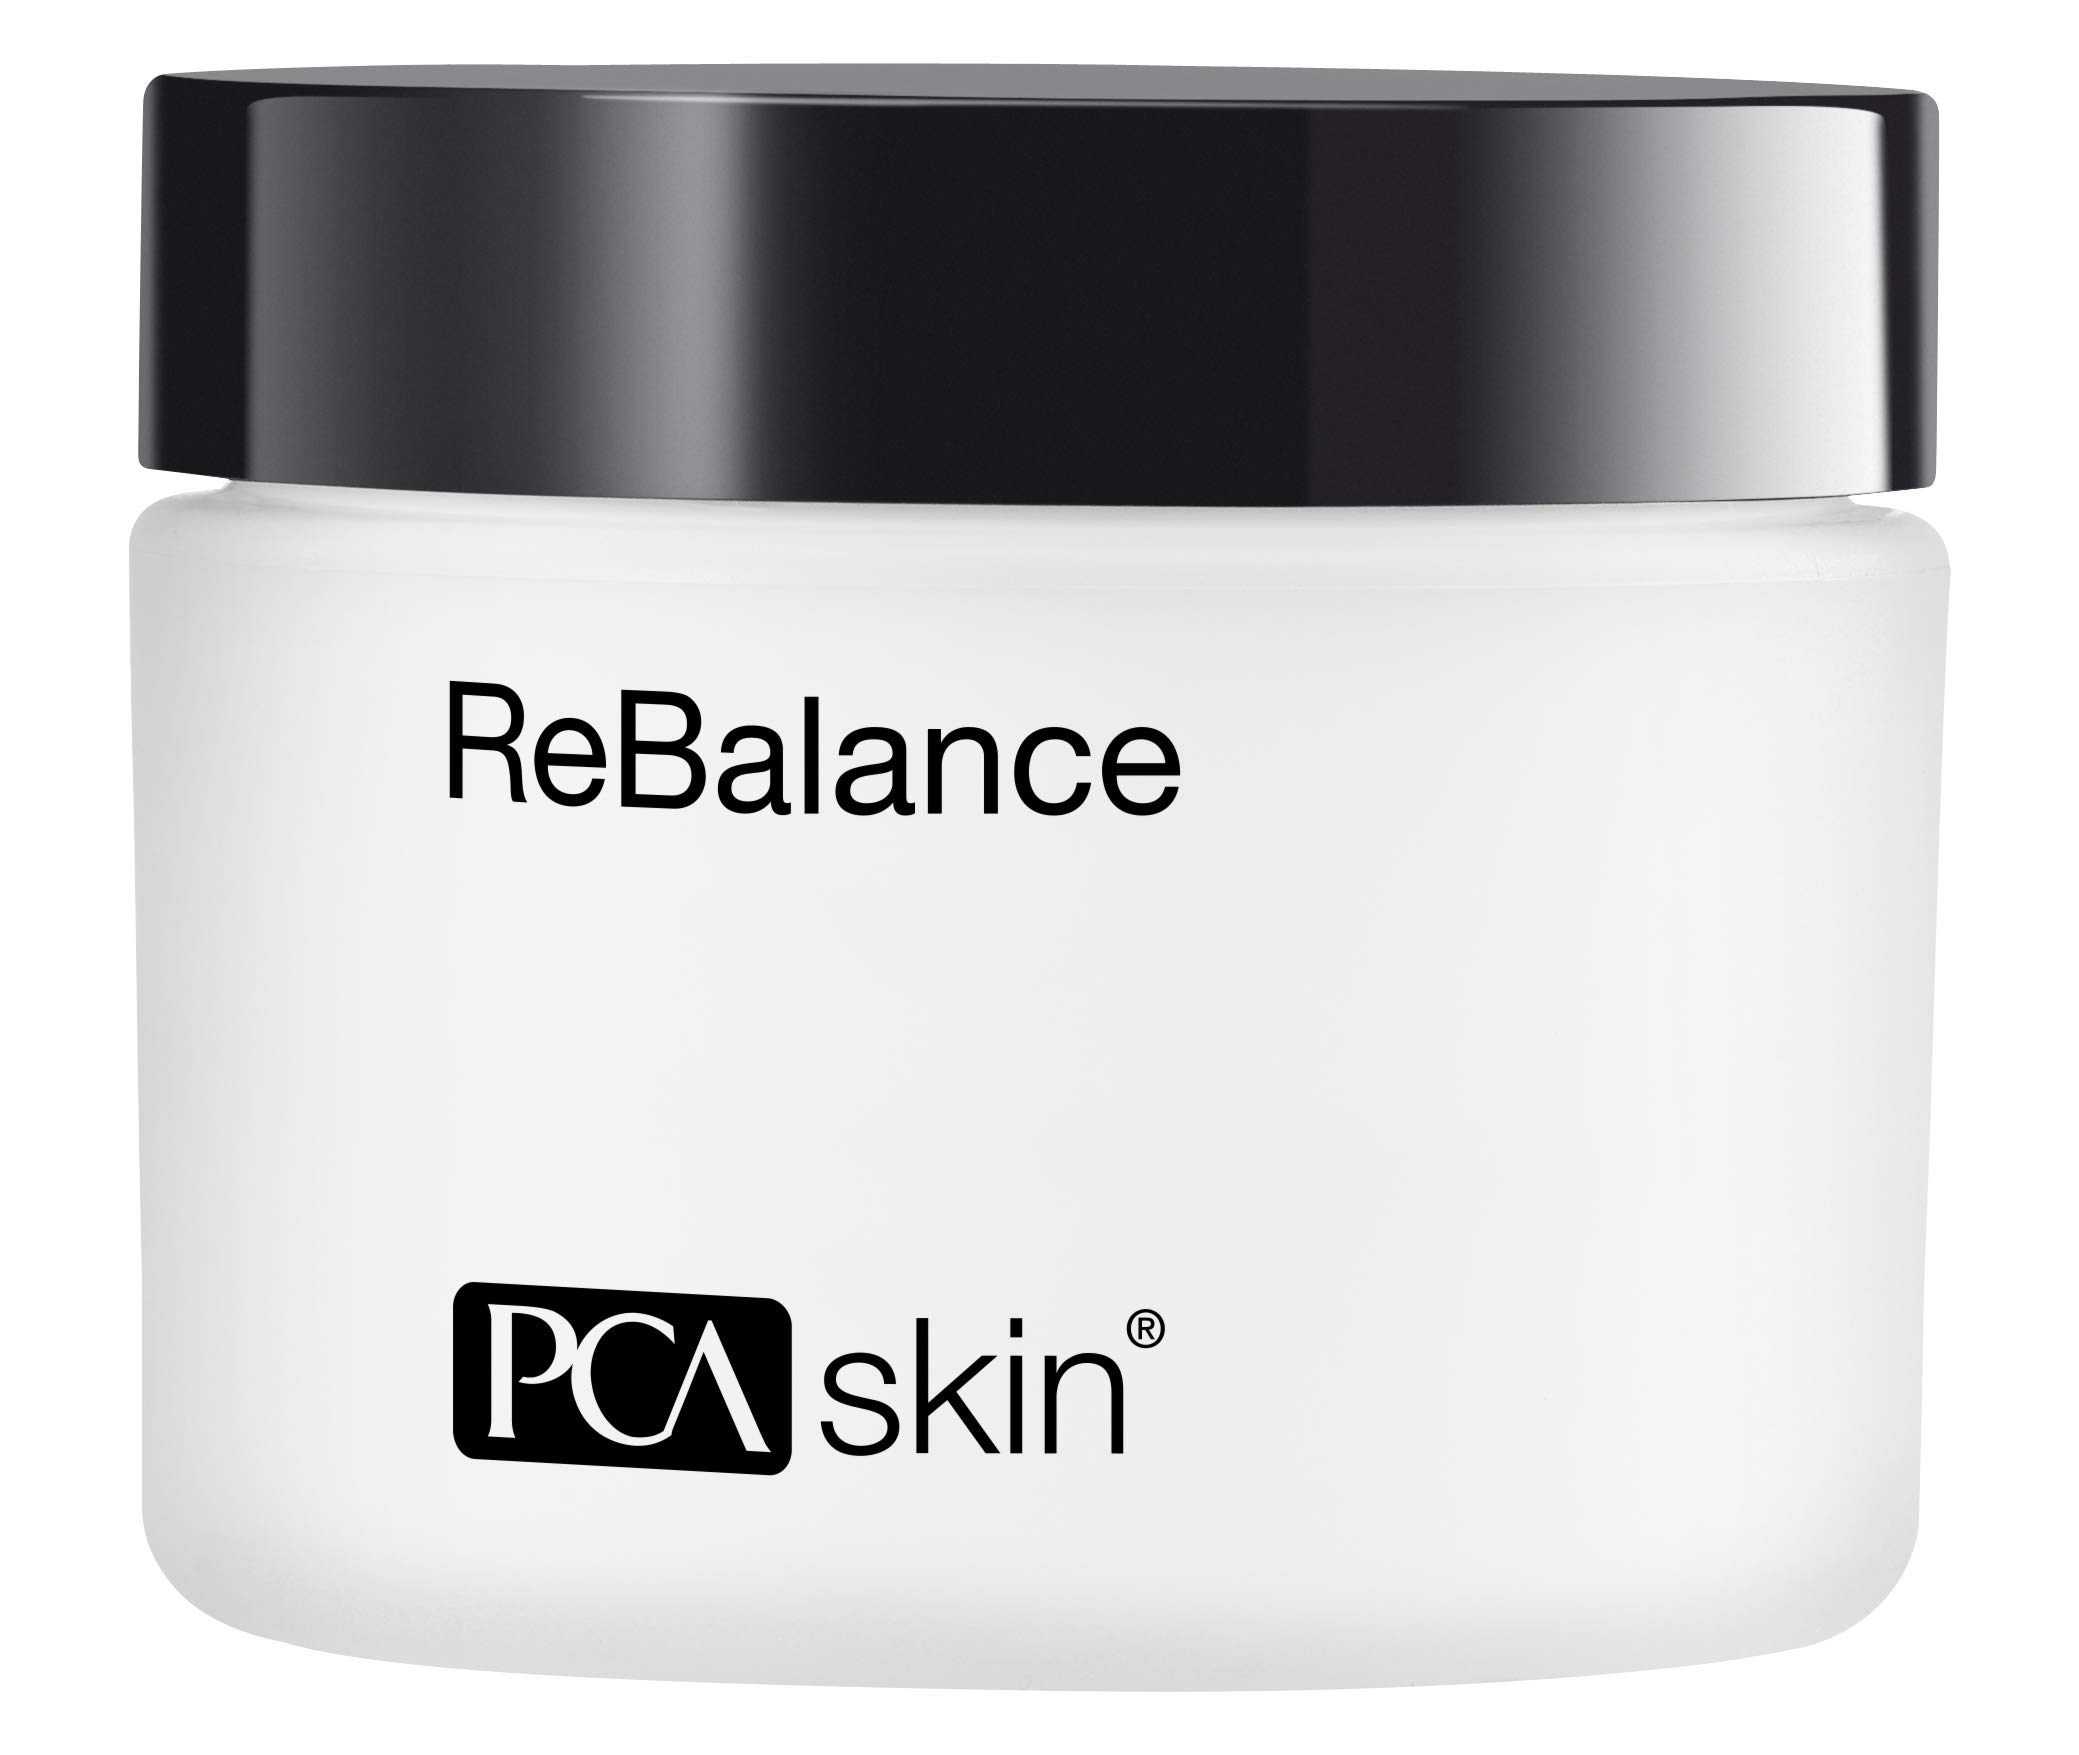 PCA SKIN ReBalance, Calming & Soothing Face Cream, 1.7 ounce by PCA SKIN